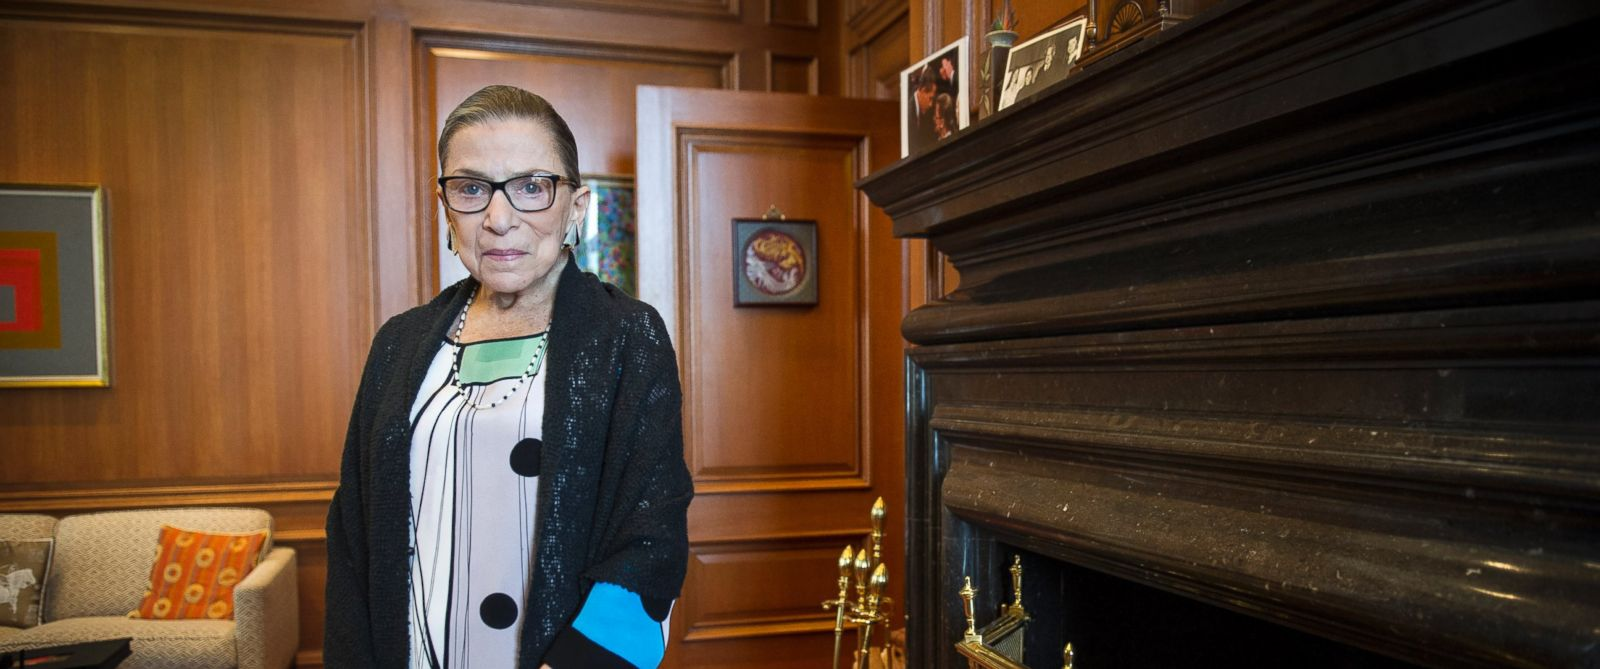 PHOTO: Associate Justice Ruth Bader Ginsburg in her Supreme Court chambers in Washington, July 31, 2014.